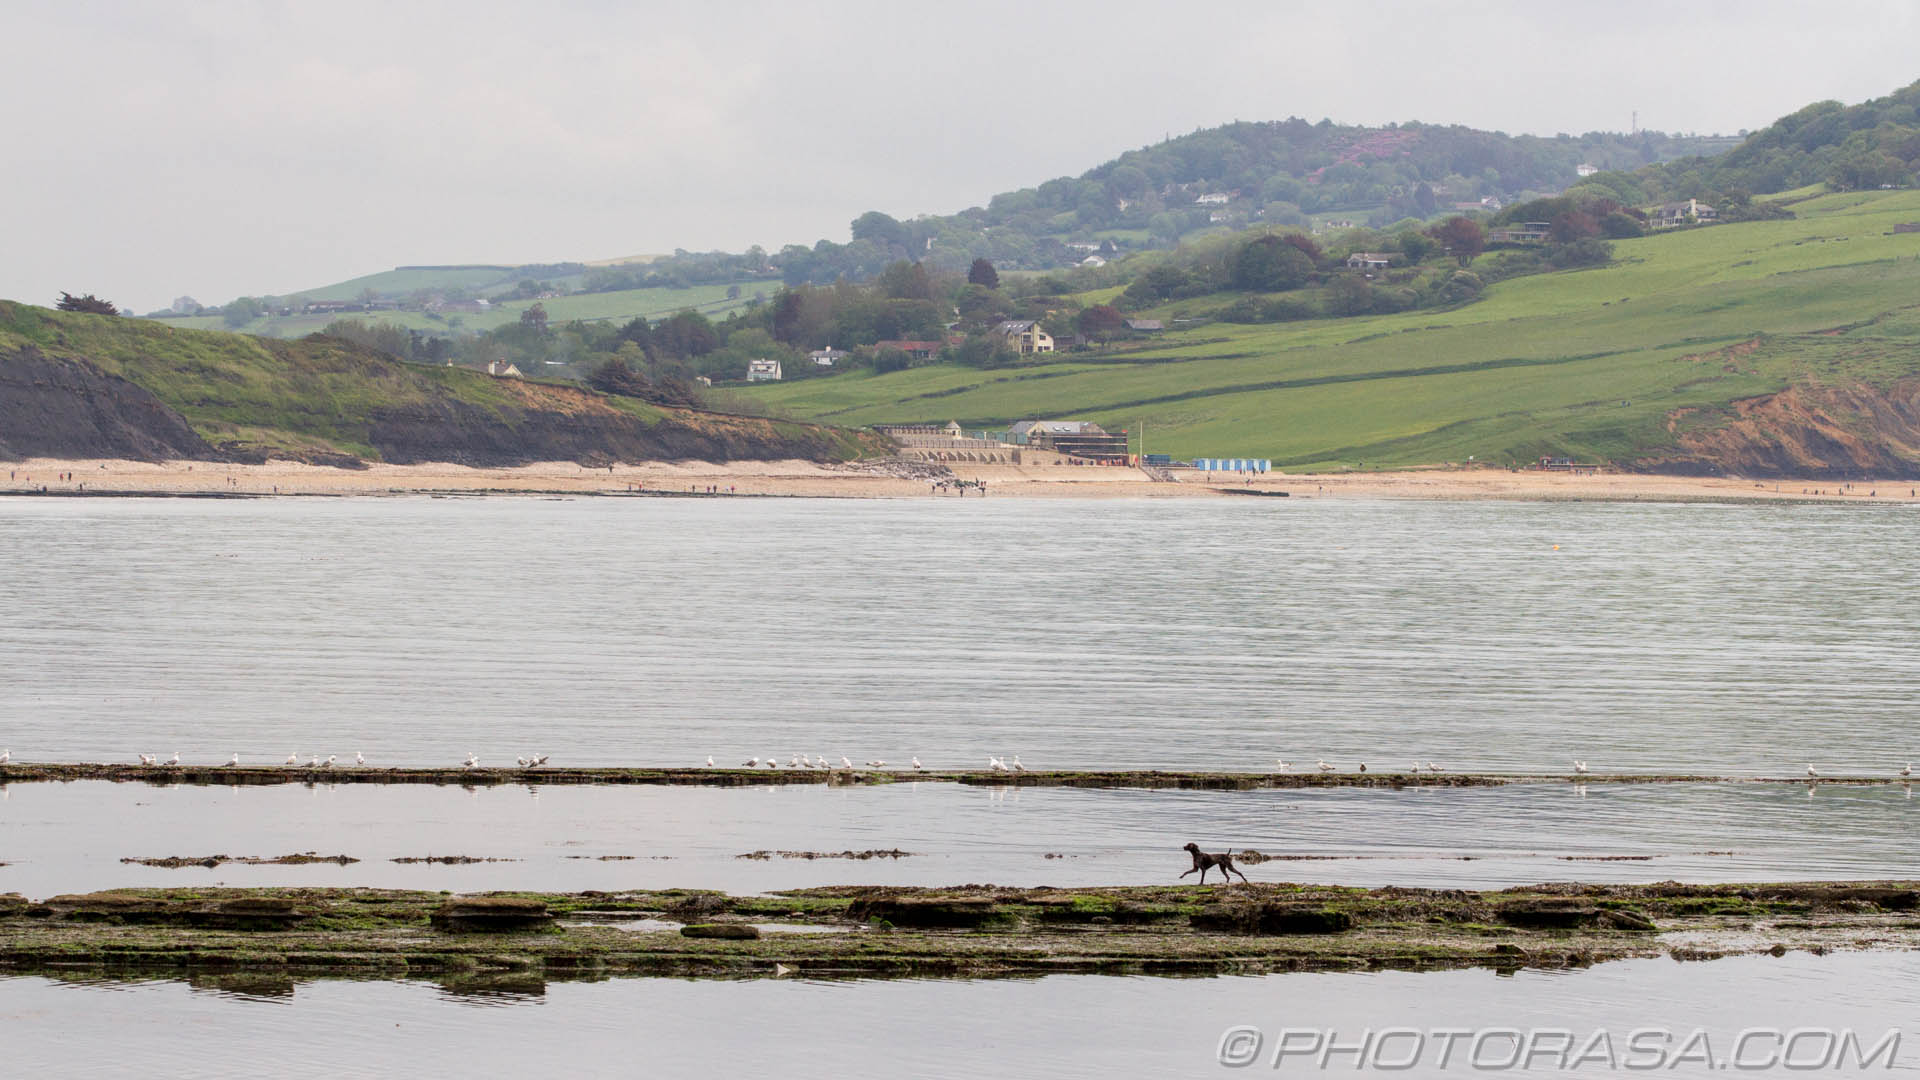 http://photorasa.com/walking-dog-jurassic-coast/running-across-water-with-background-landscape/